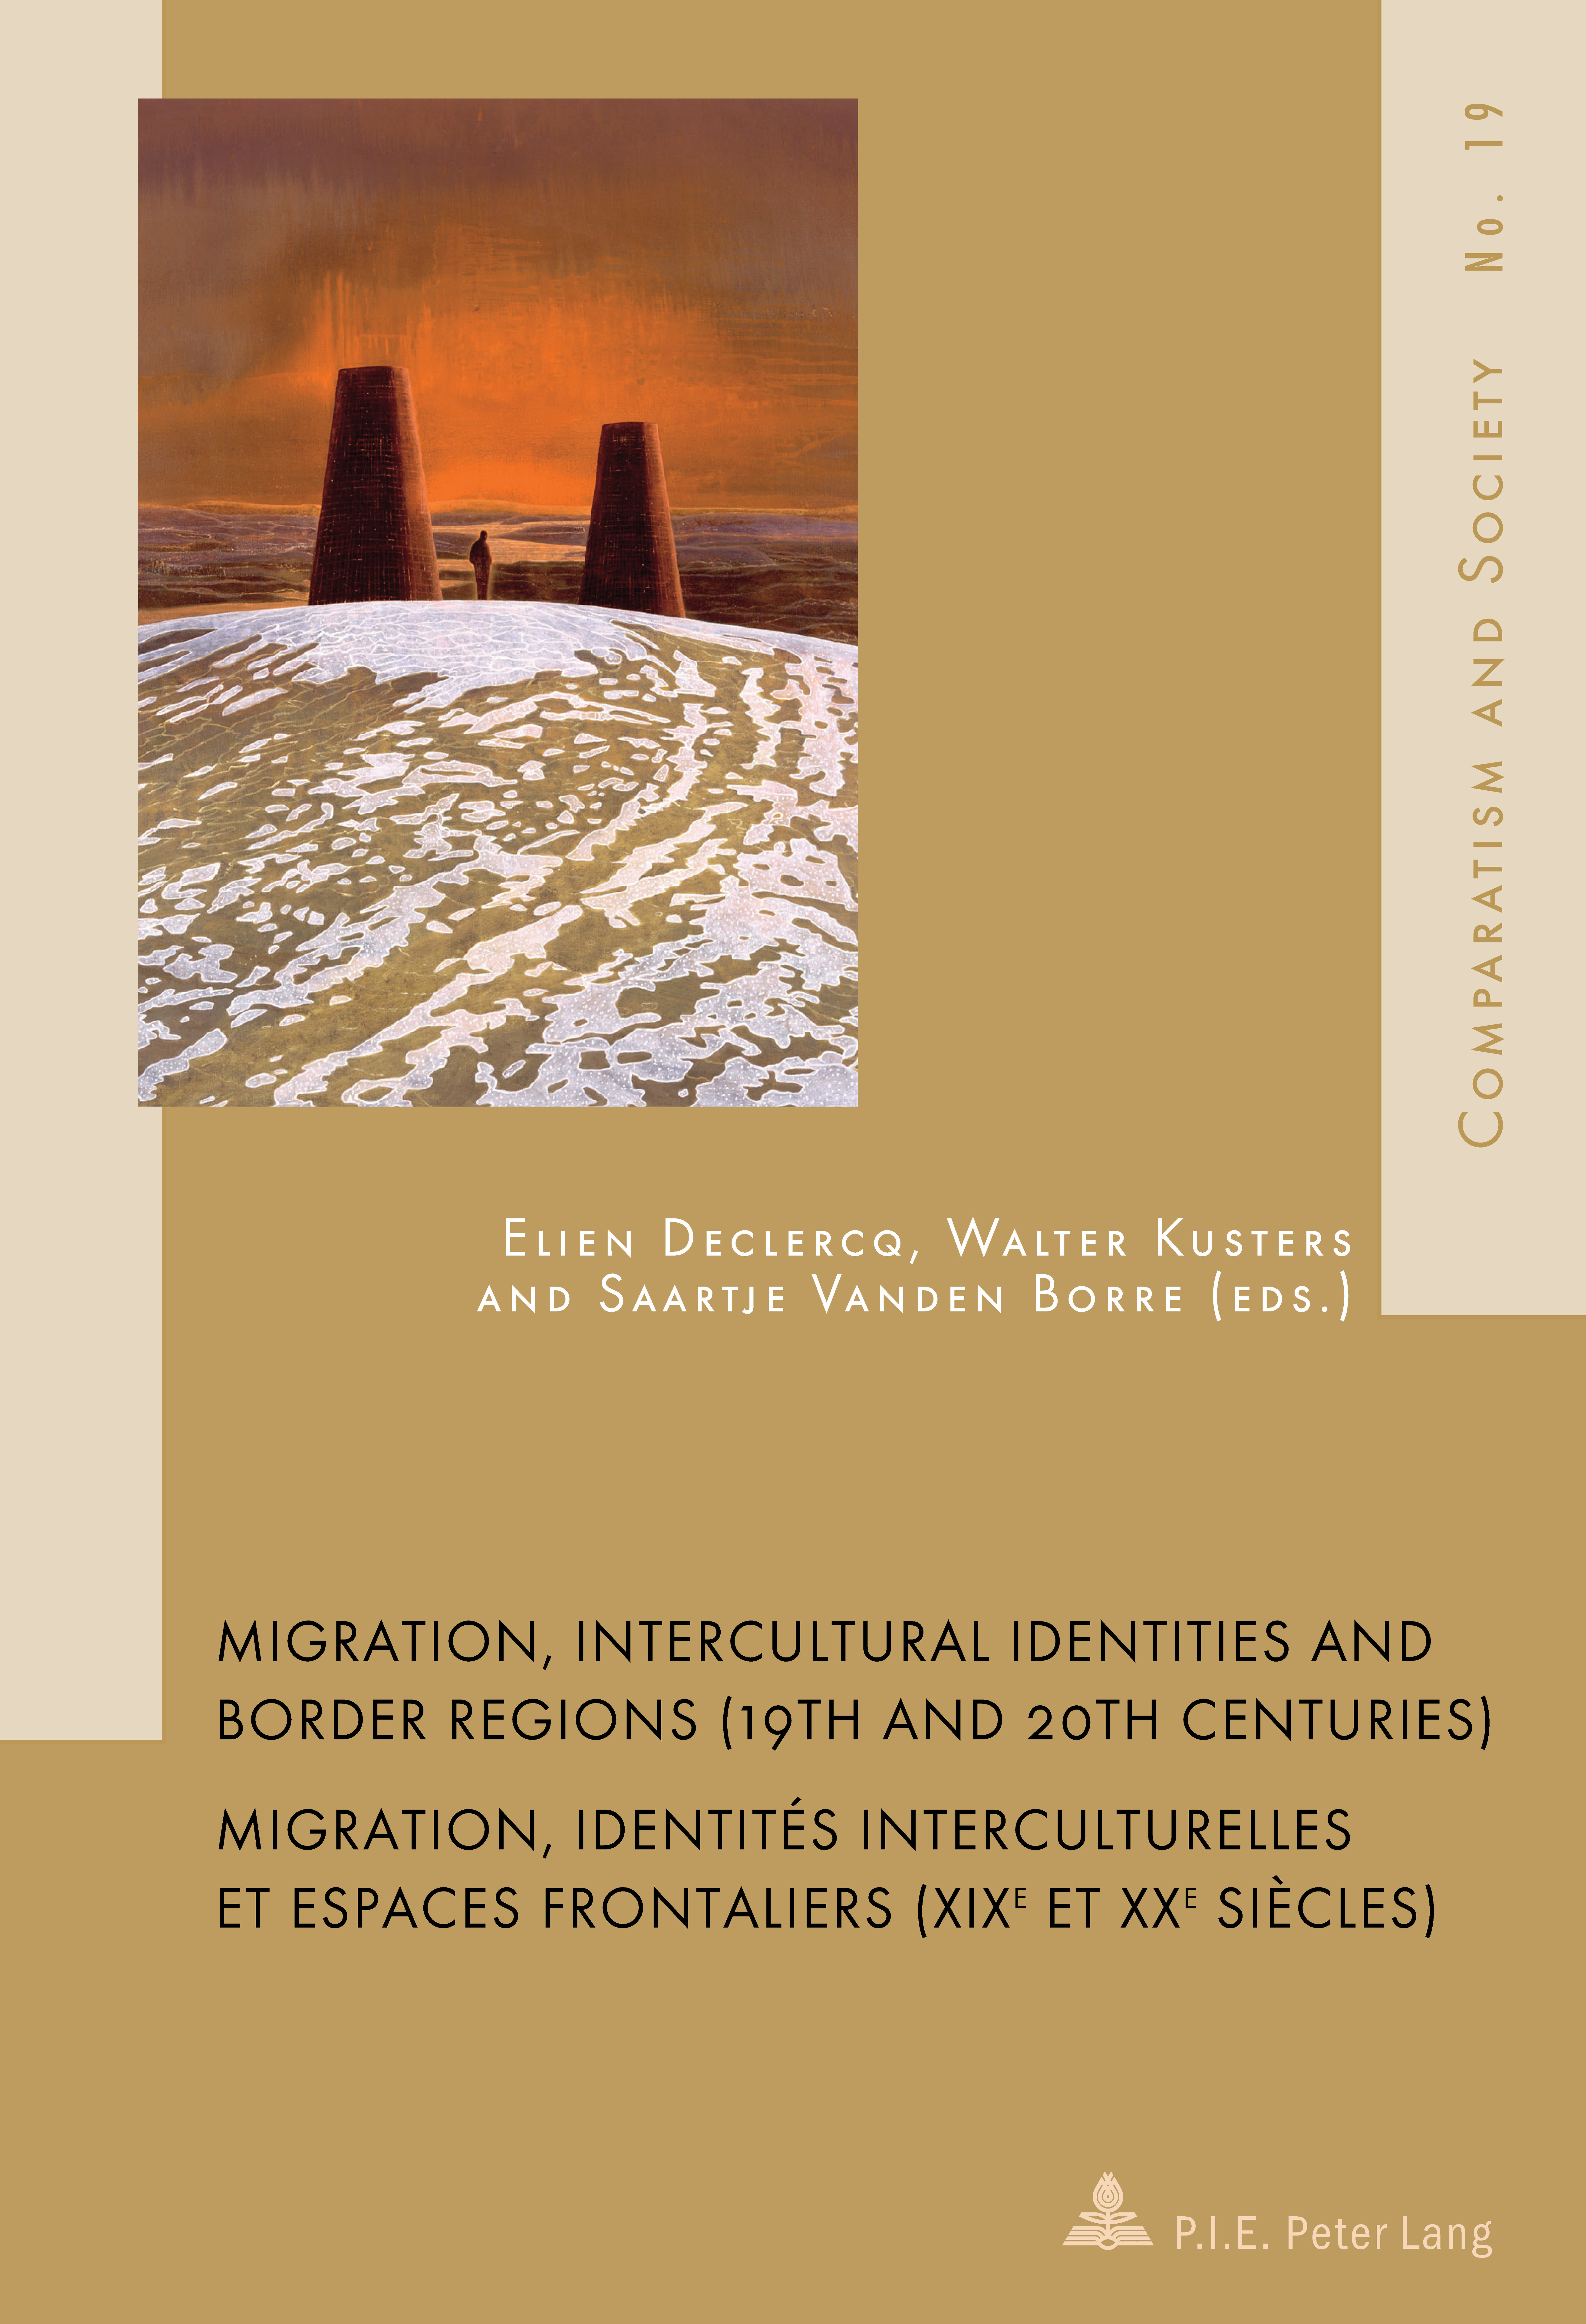 MIGRATION, INTERCULTURAL IDENTITIES AND BORDER REGIONS (19TH AND 20TH CENTURIES)/MIGRATION, IDENTITE